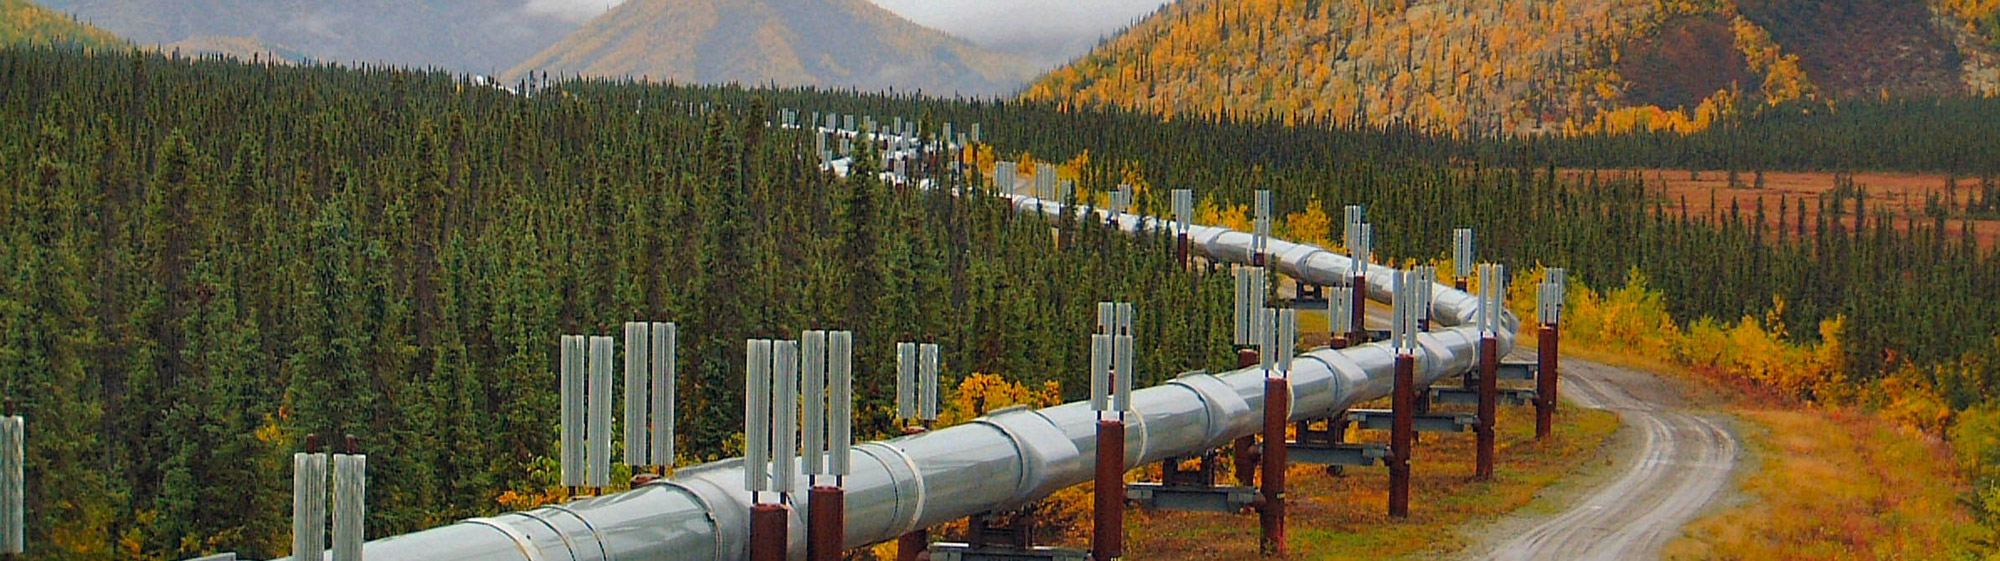 the Alaska Pipeline winding through forests and mountains